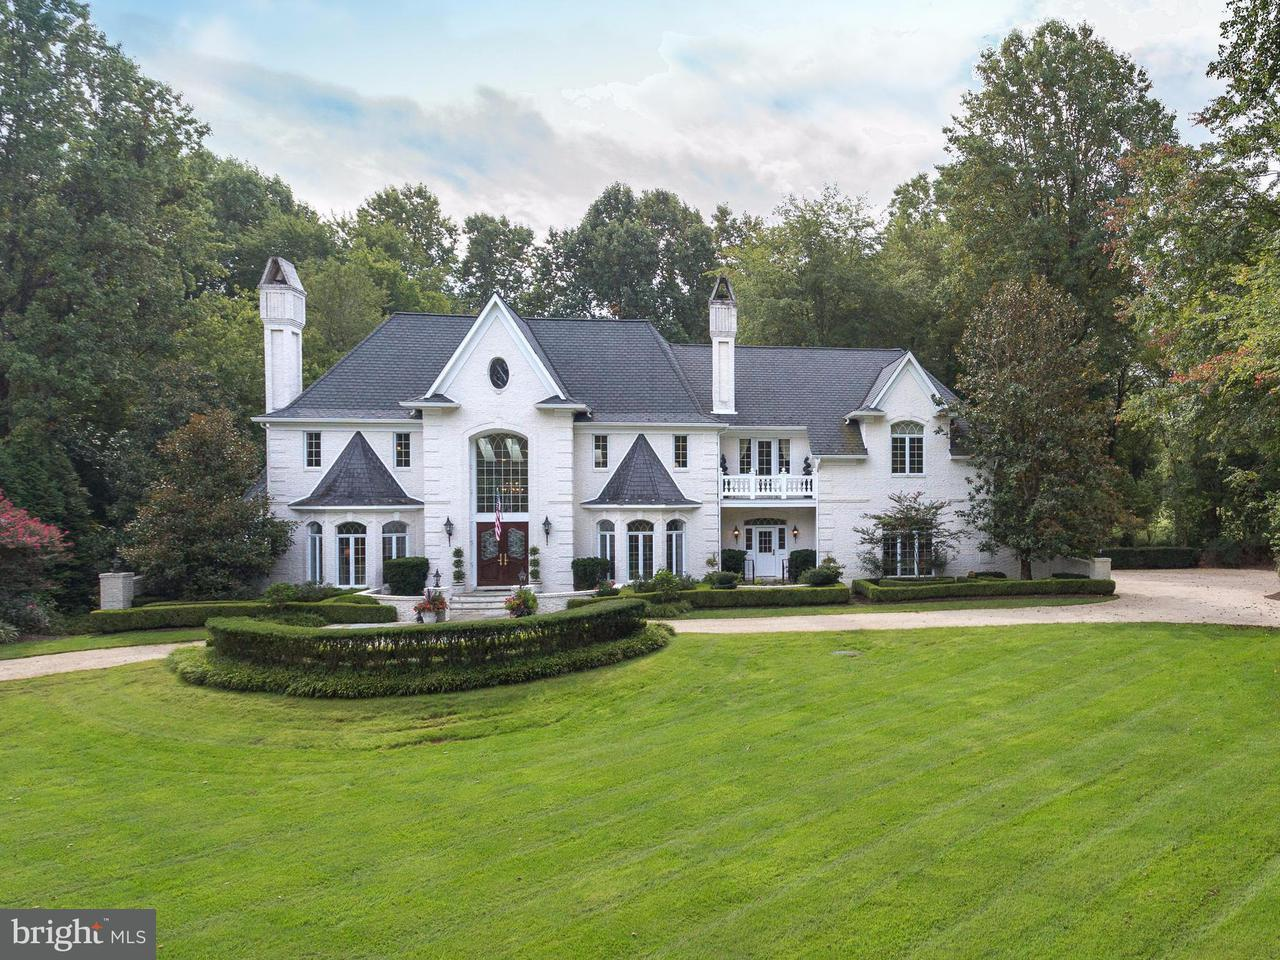 Single Family Home for Sale at 1031 TOWLSTON Road 1031 TOWLSTON Road McLean, Virginia 22102 United States